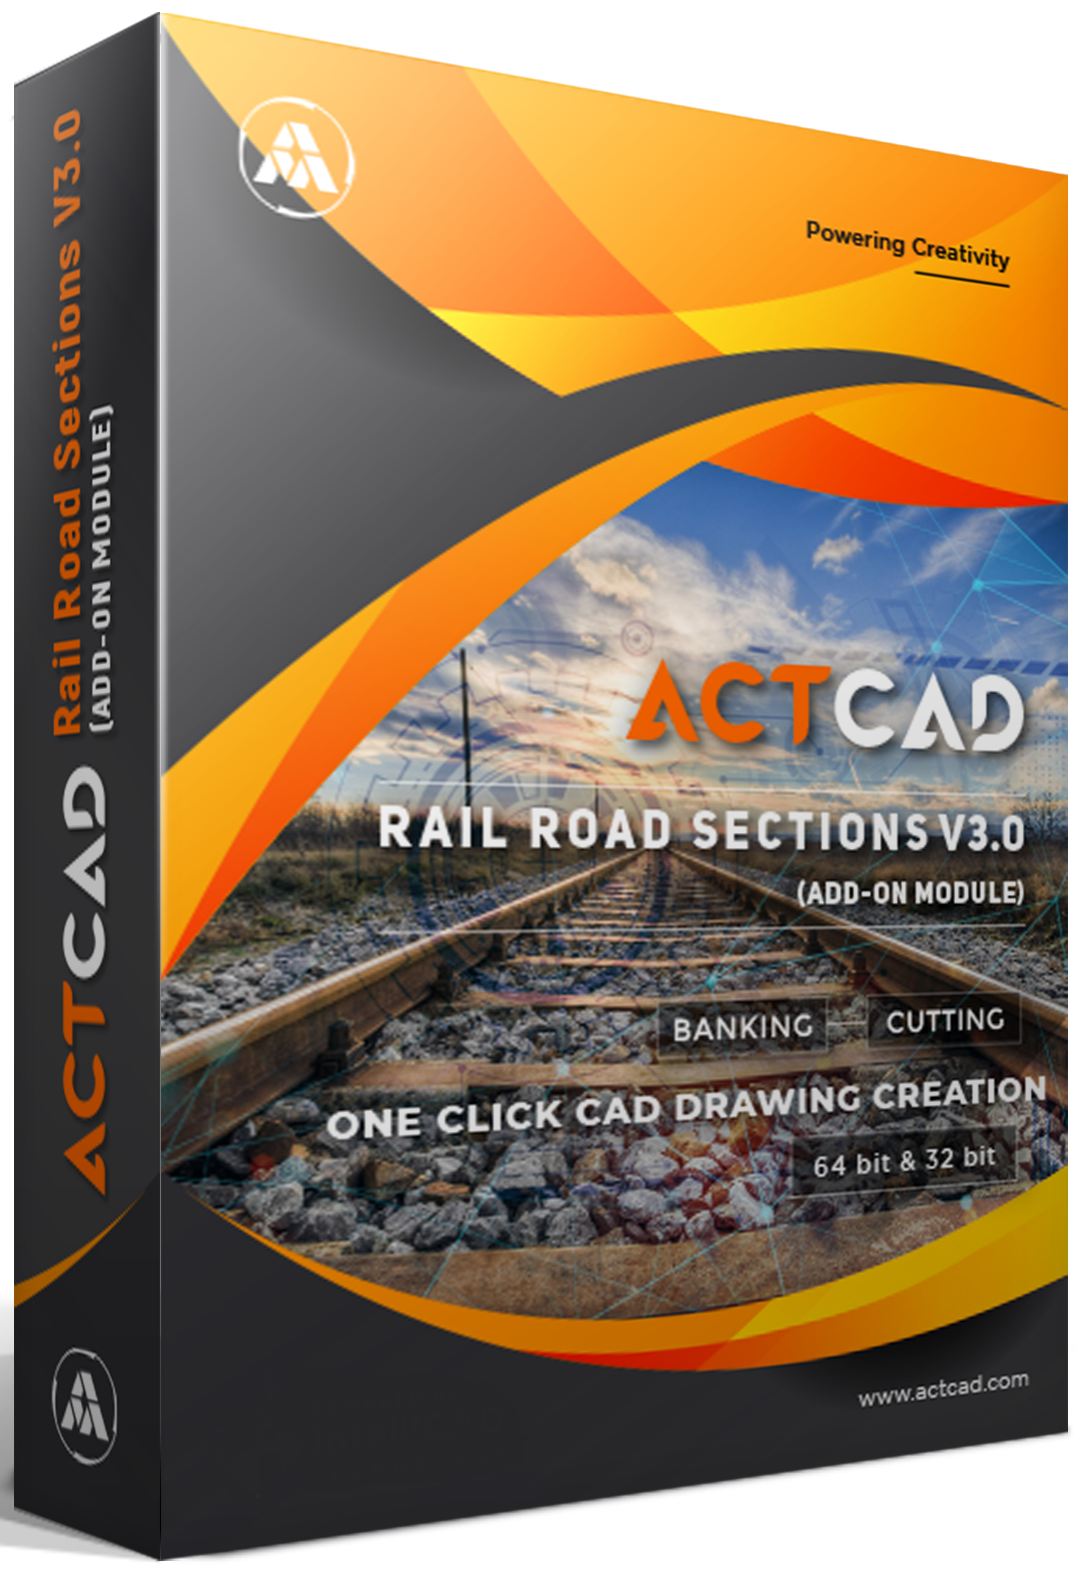 ACTCAD-Product-Box-2020-Rail-Track-Section-Final-Mockup-01